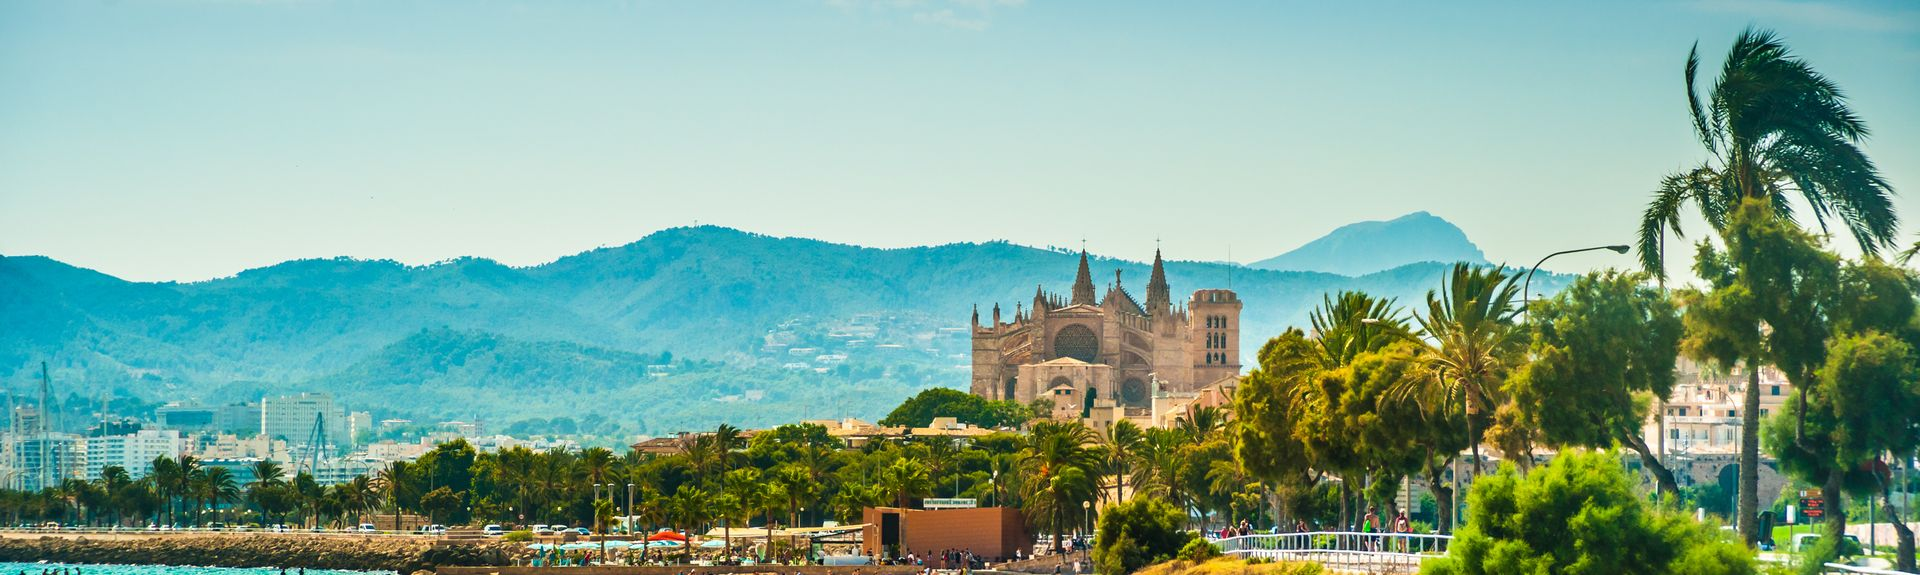 Palma de Mallorca, Balearic Islands, Spain